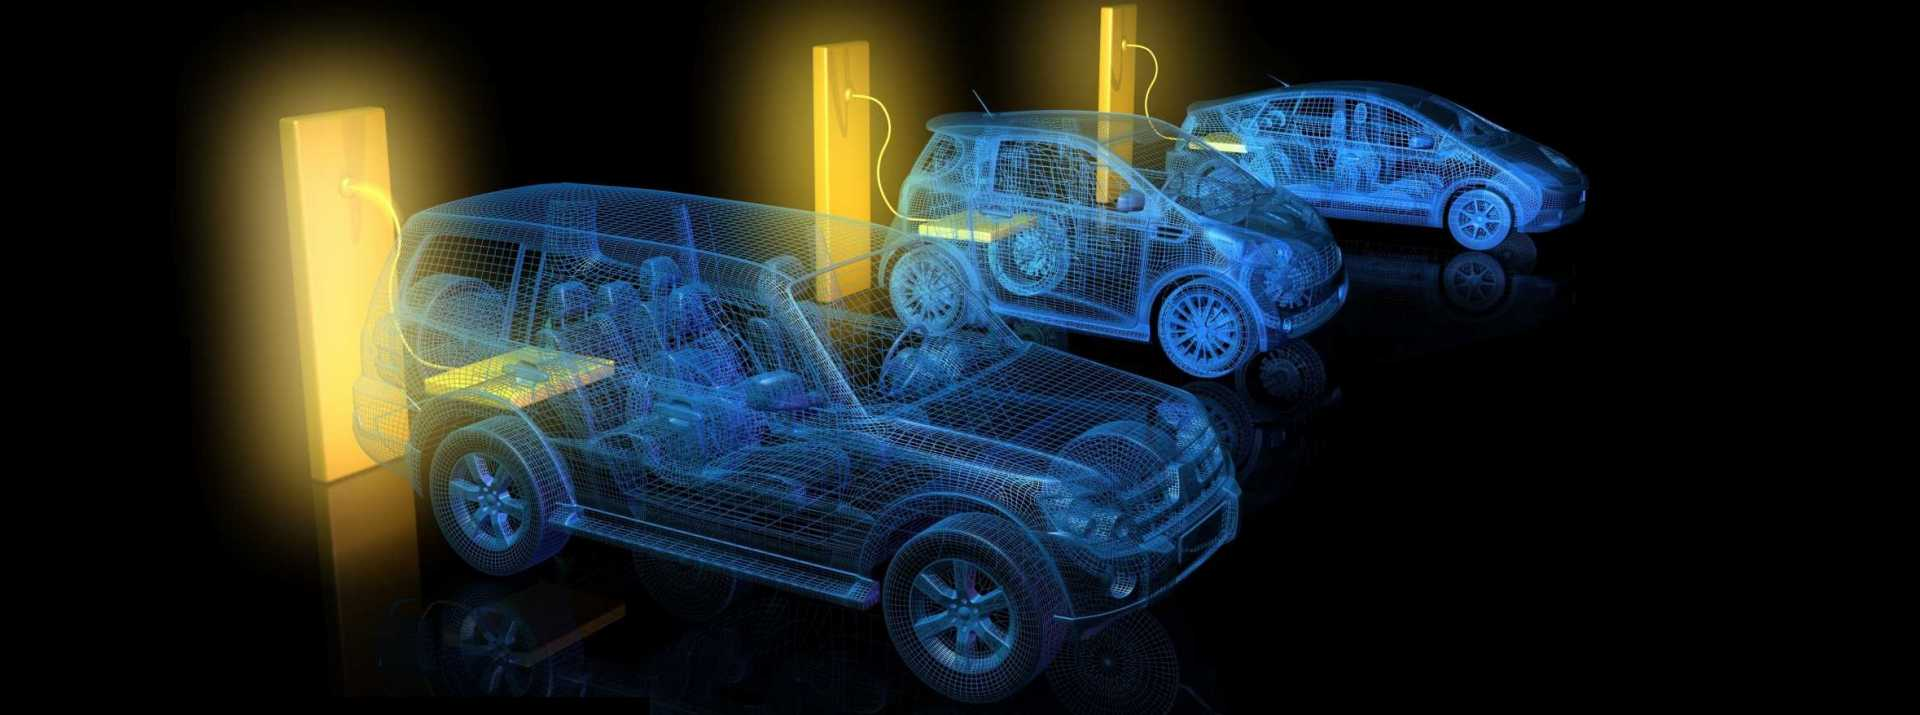 CROP - Automotive charging points electric and hybrid vehicles batteries thermal runaway – shutterstock image.